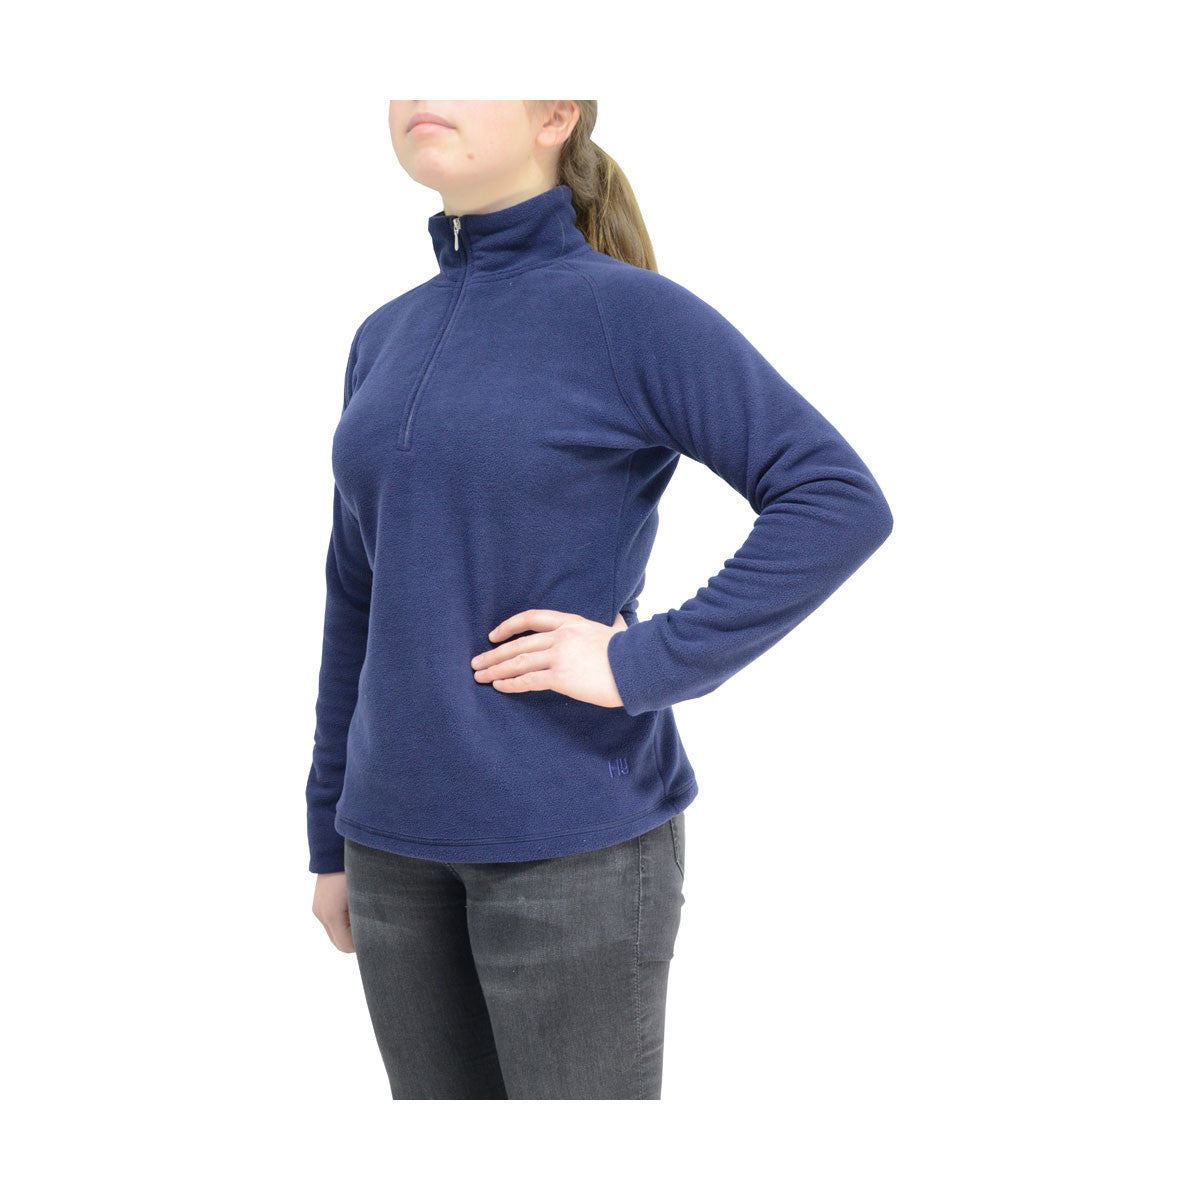 HyFASHION Basic Navy Fleece.